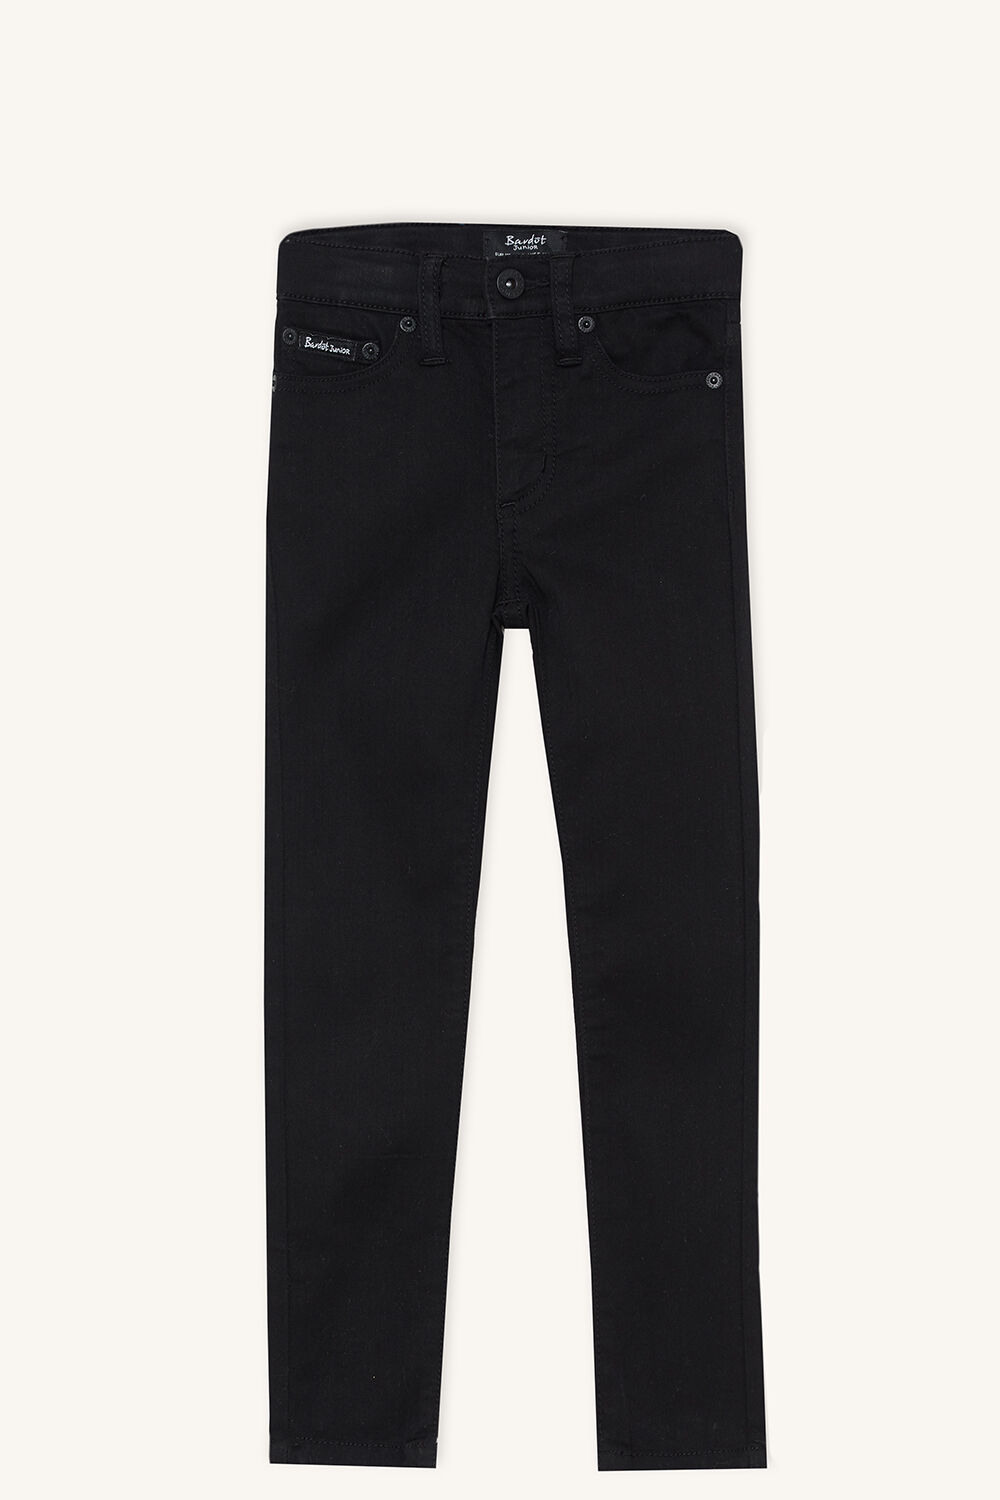 JUNIOR GIRL SIENNA MID RISE JEAN in colour JET BLACK